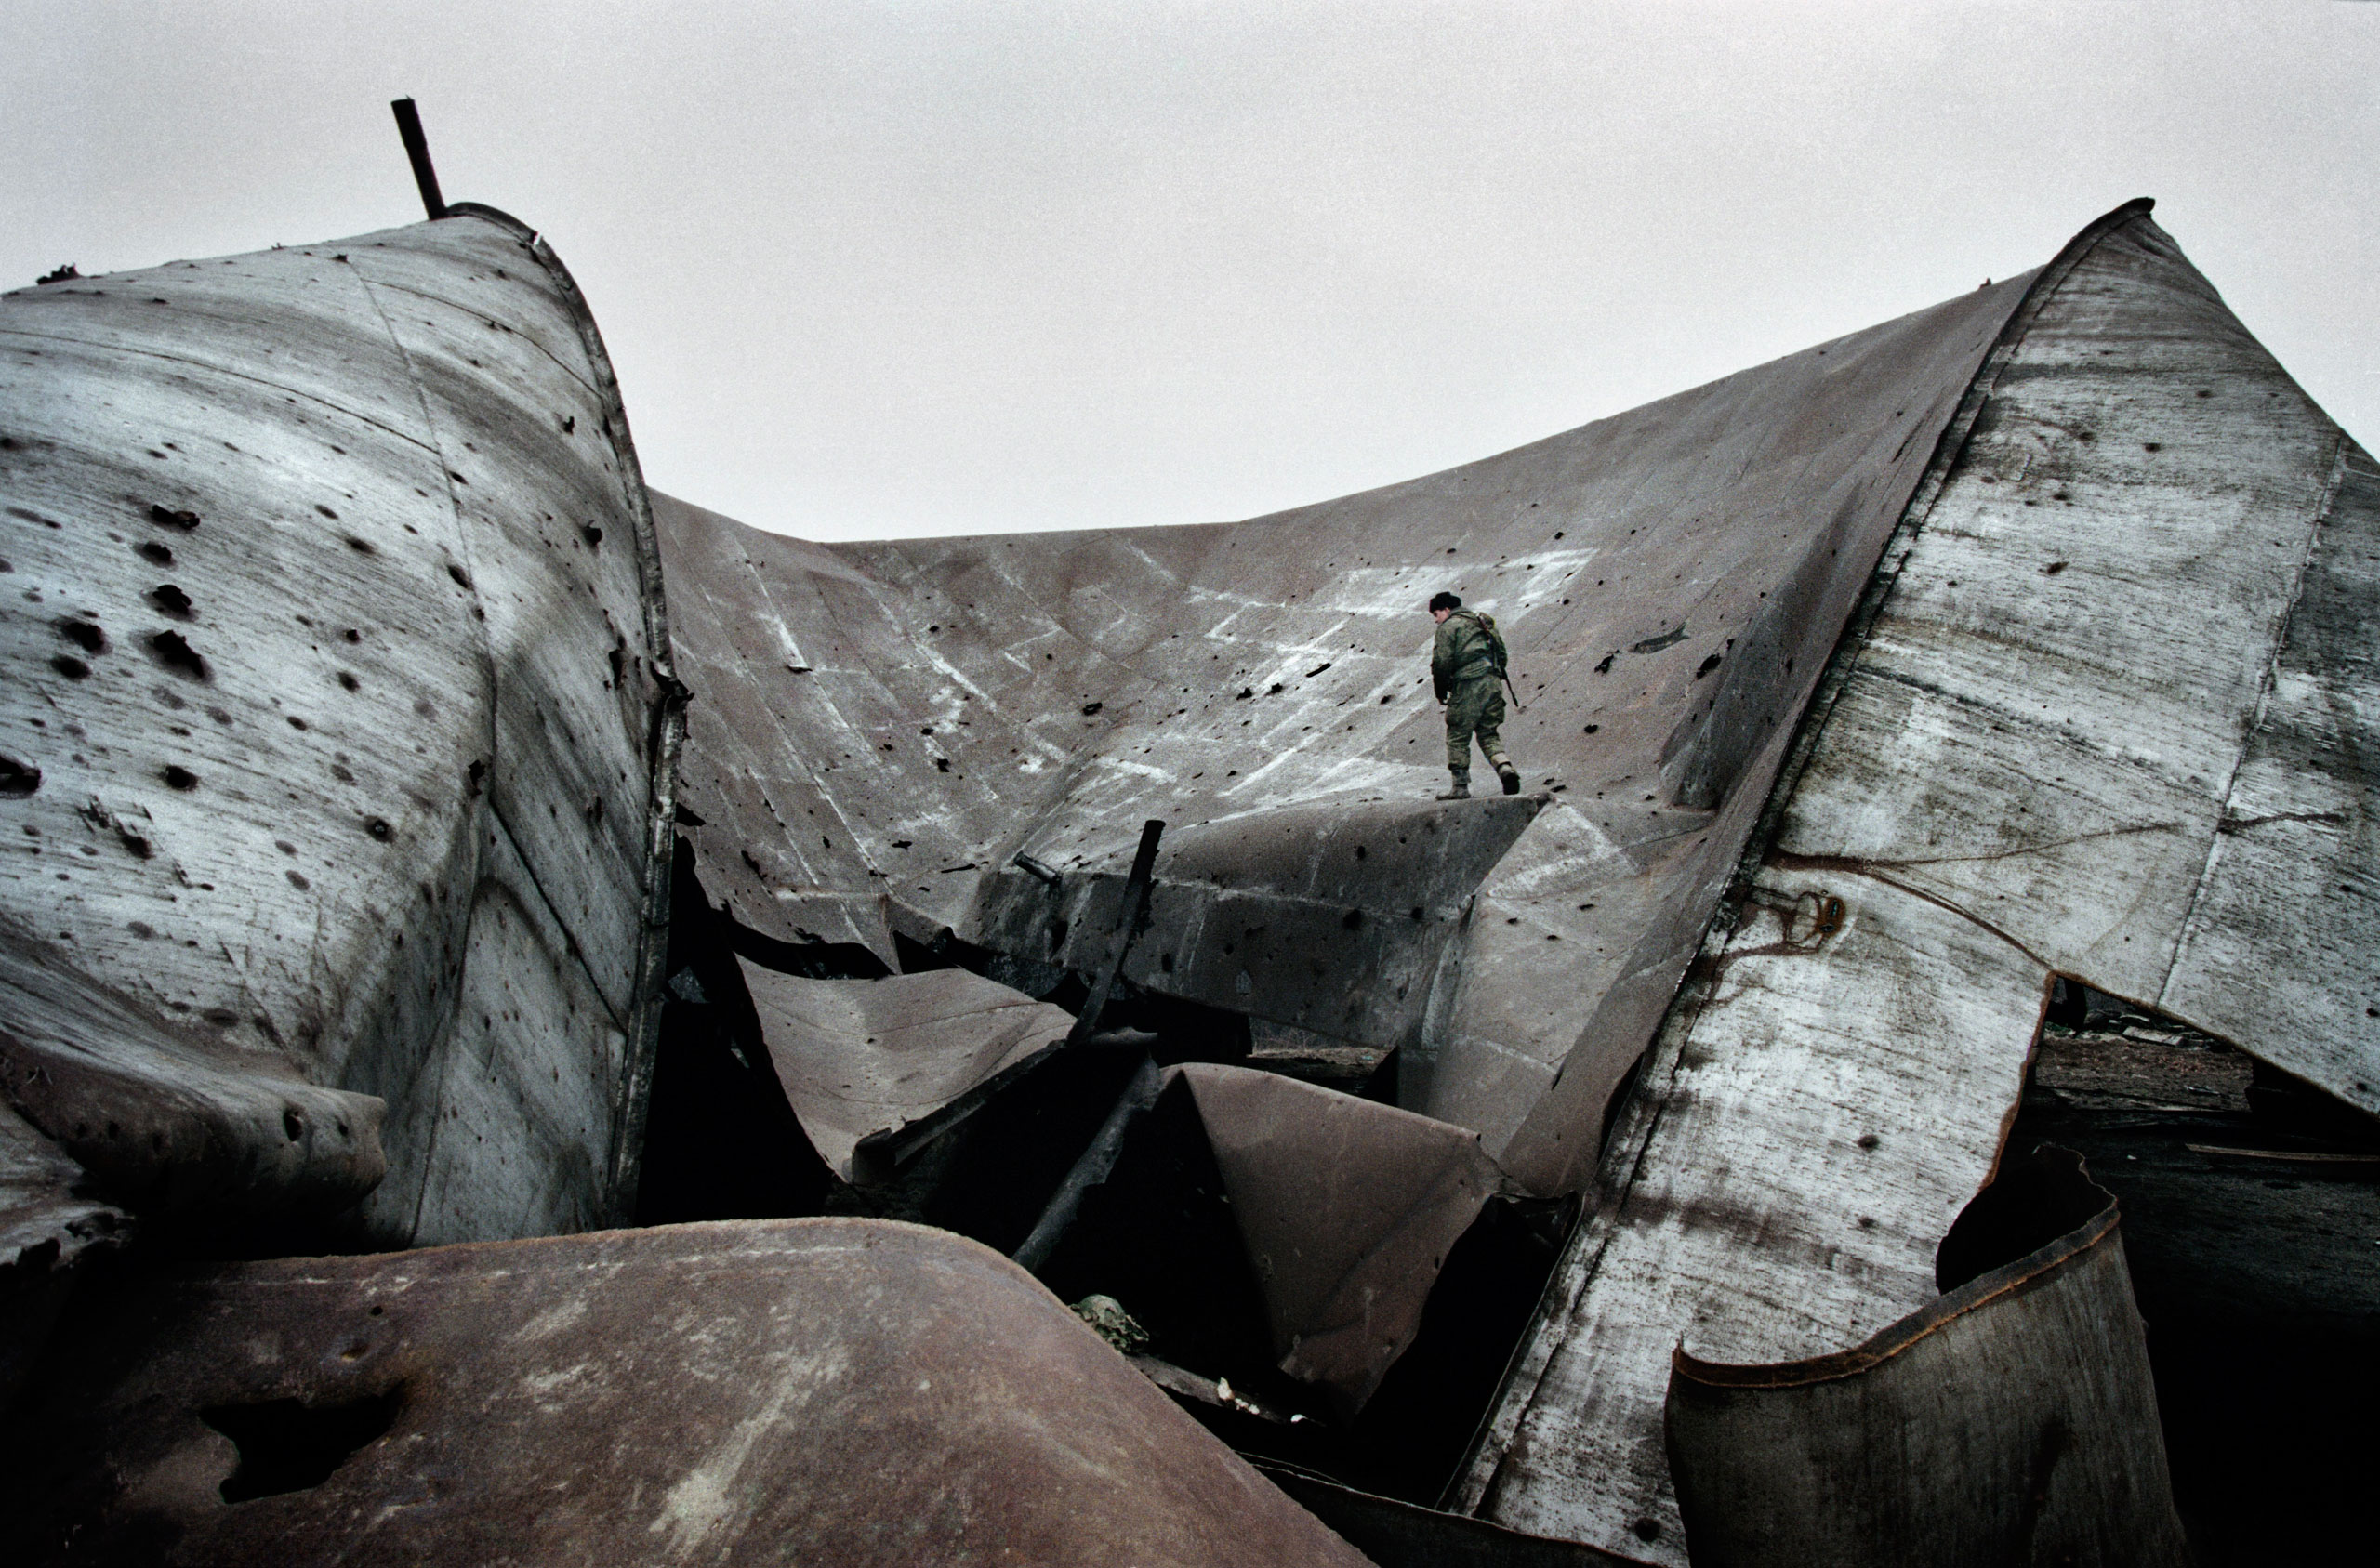 A  russian soldier at an  oil refinery storage facility that was destroyed in the first Chechen War, Tsentaroy, Chechnya, December 1999. Chechnya's plentiful crude oil is one of  the main reasons why Russia refused to allow the region to secede.